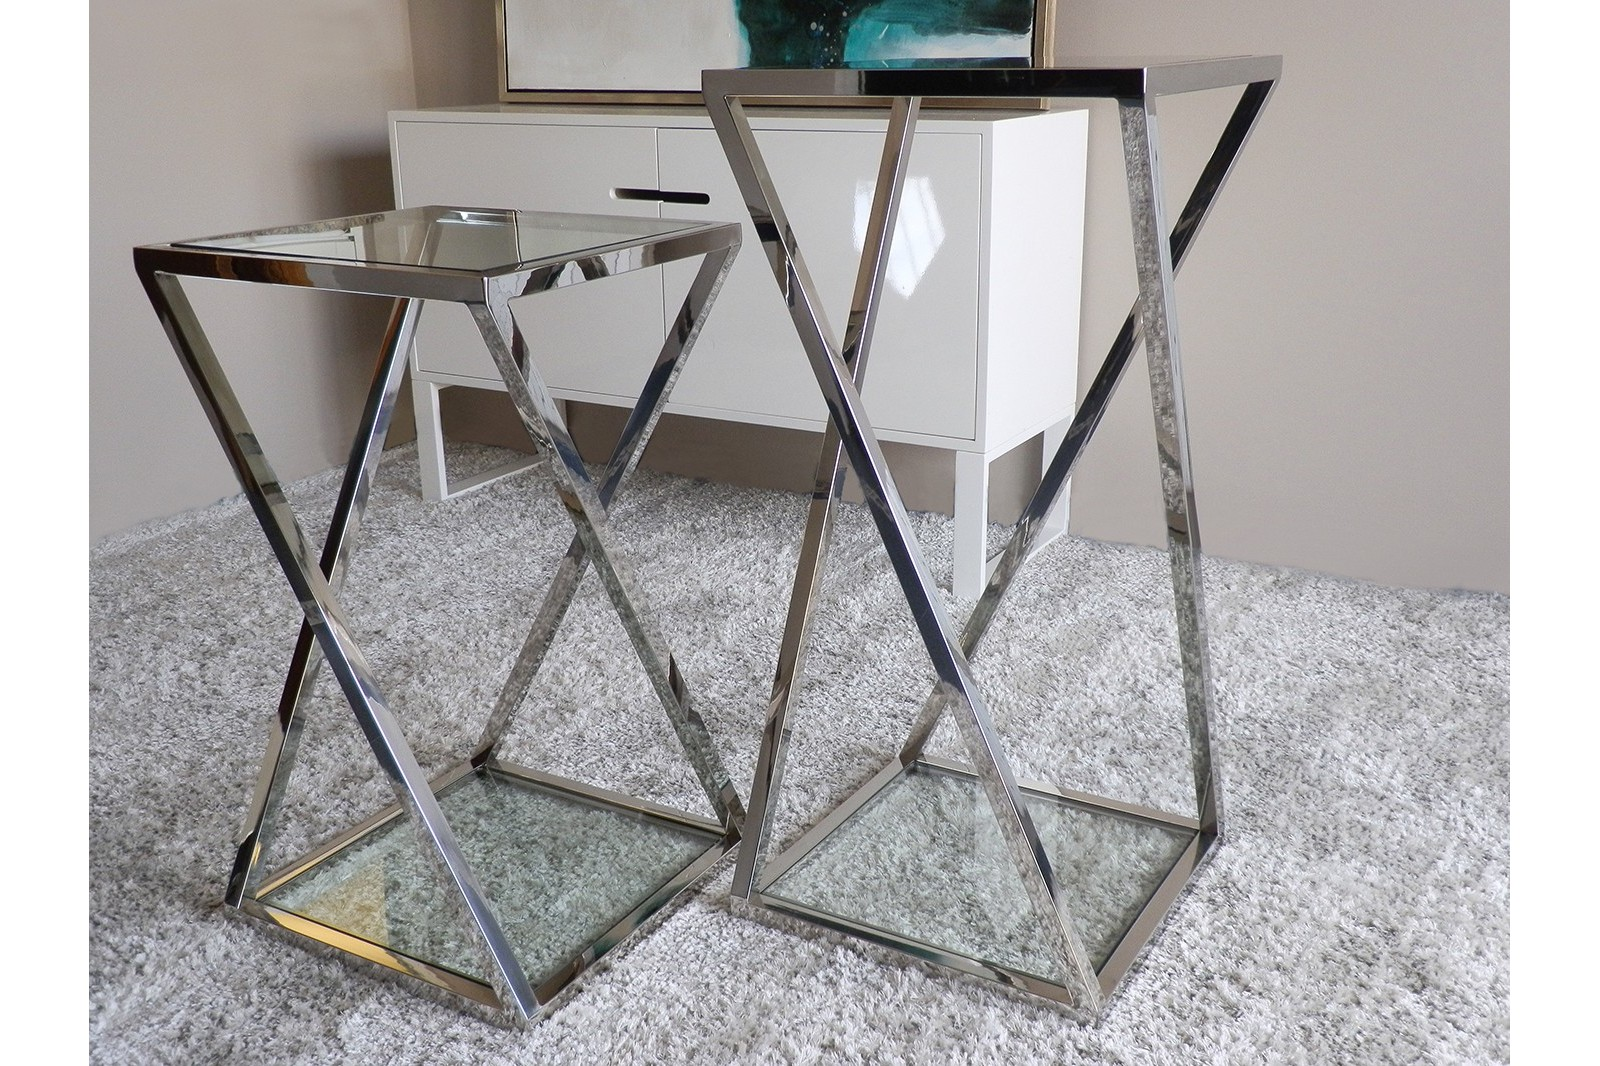 SIDE TABLE STAINLESS STEEL/TEMPERED GLASS